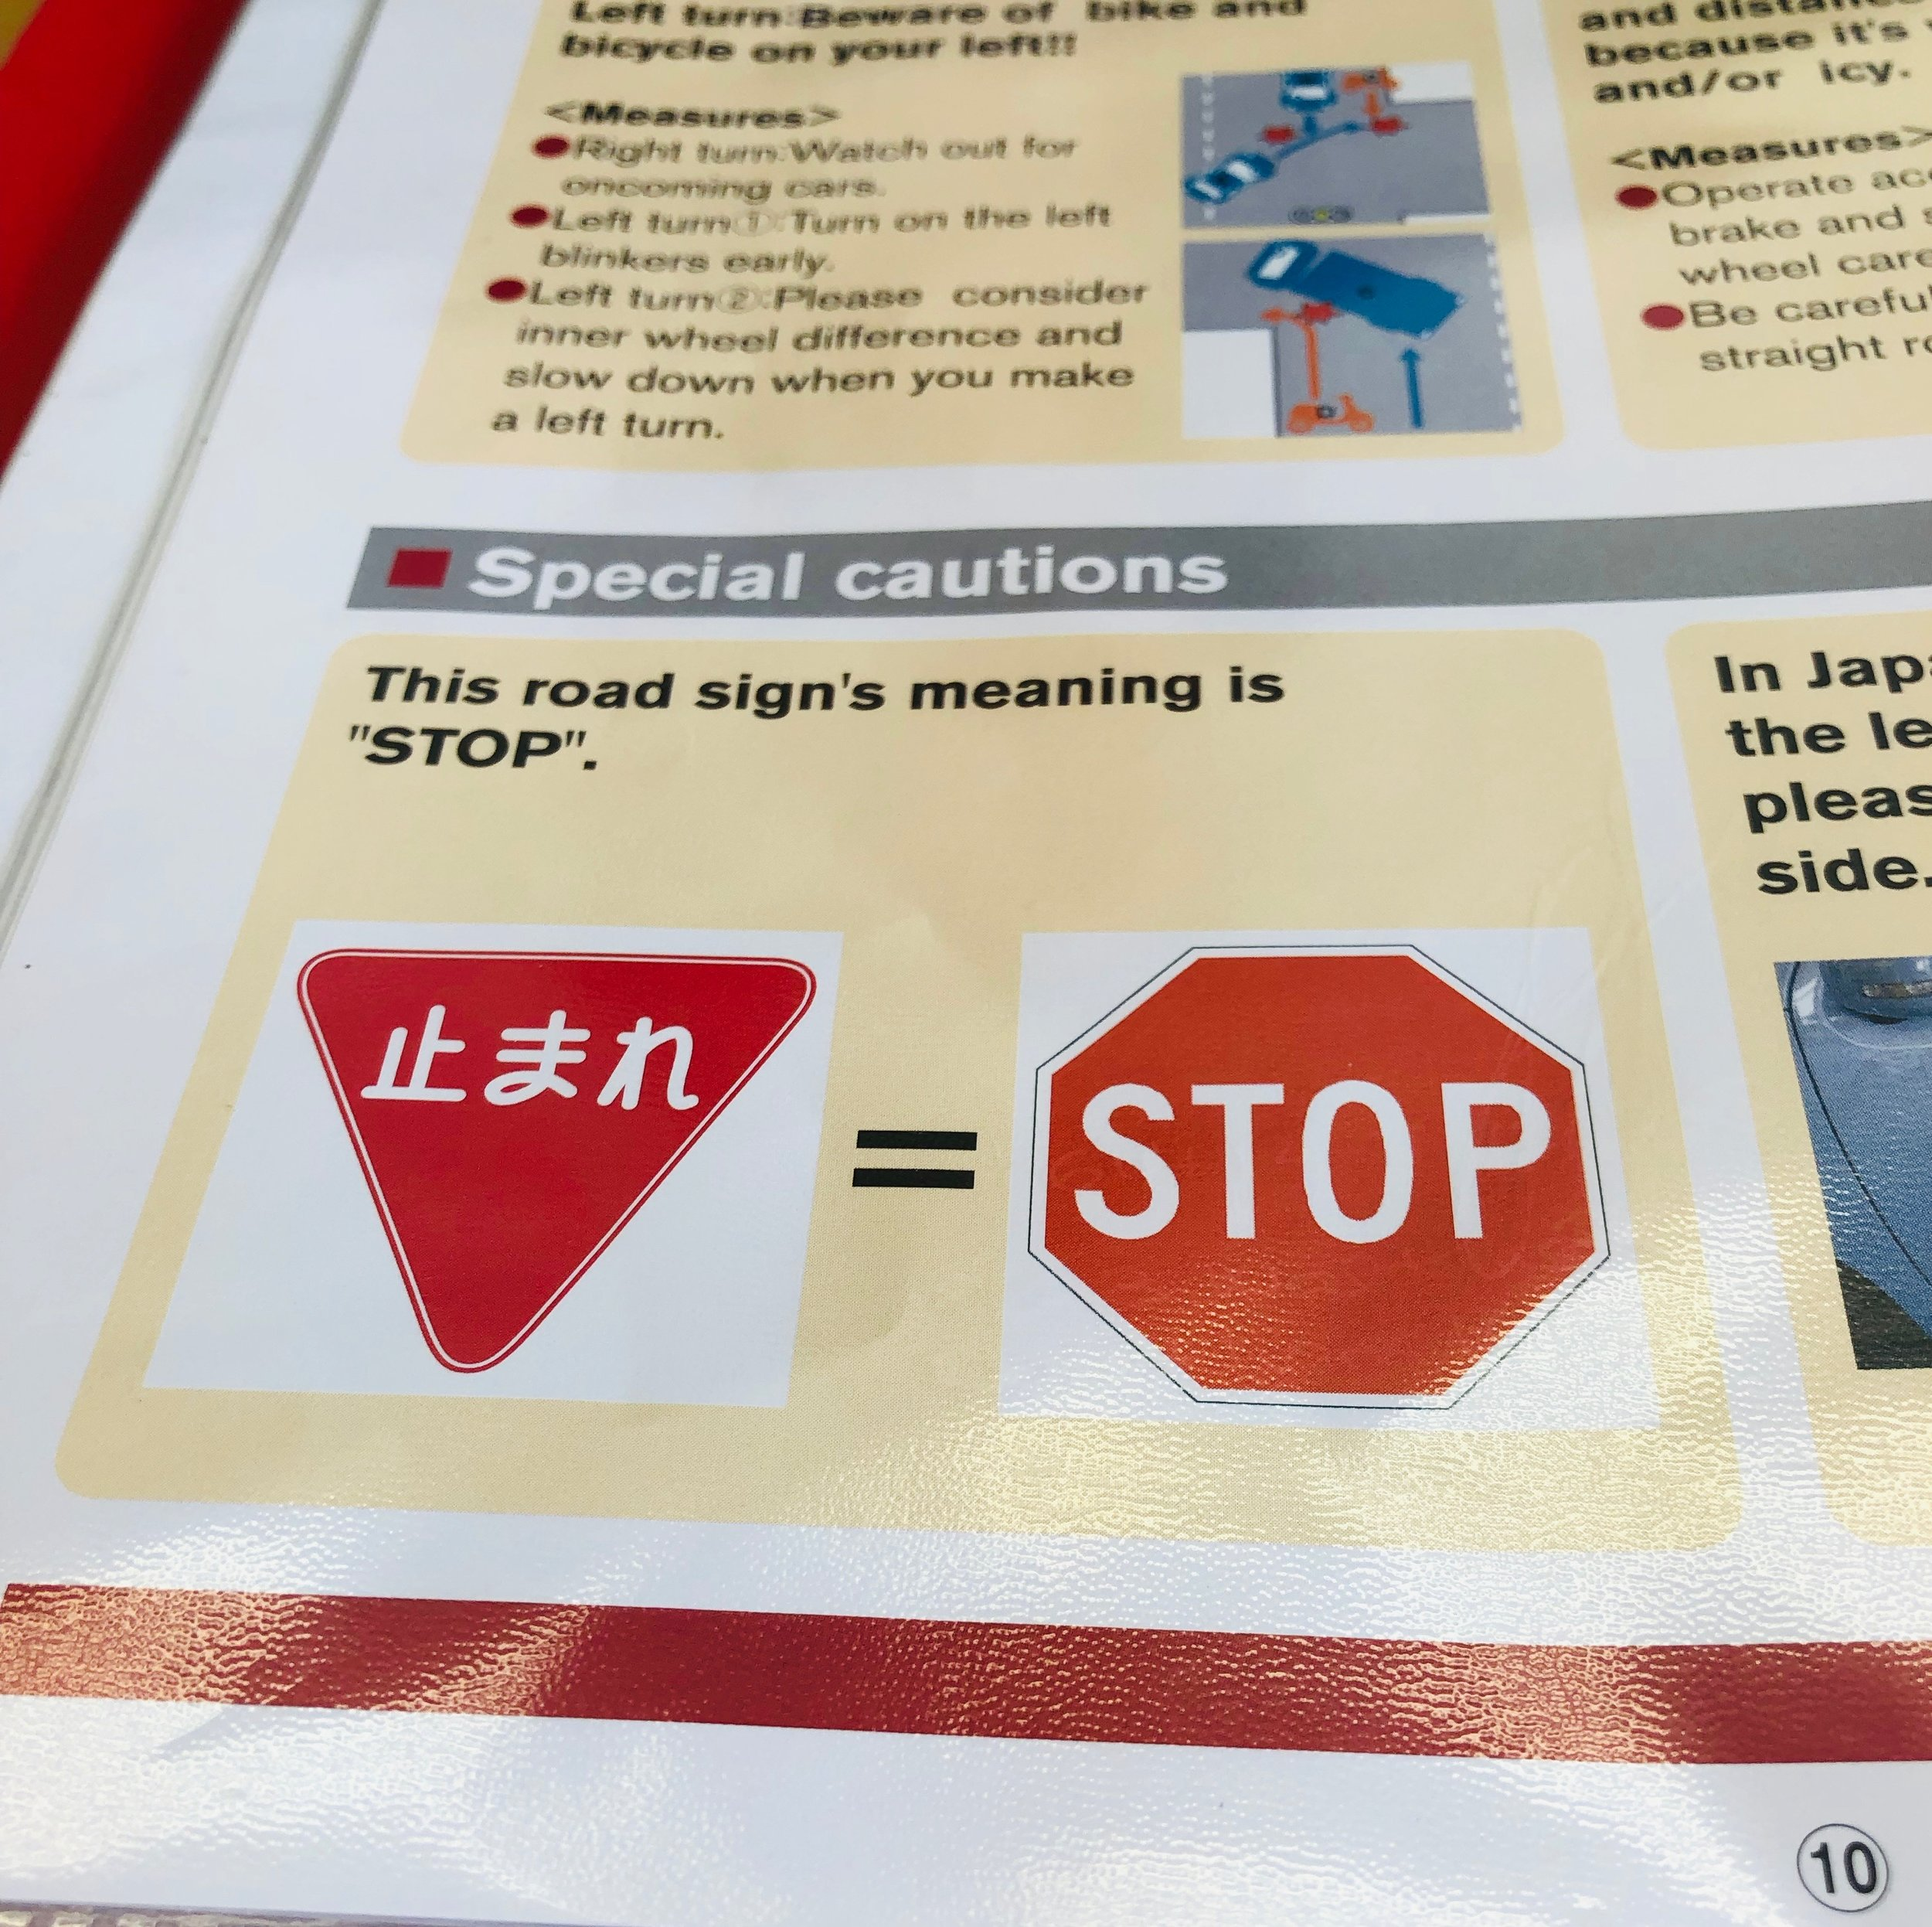 Red means stop. Stop sign in Japanese is an inverted red triangle.